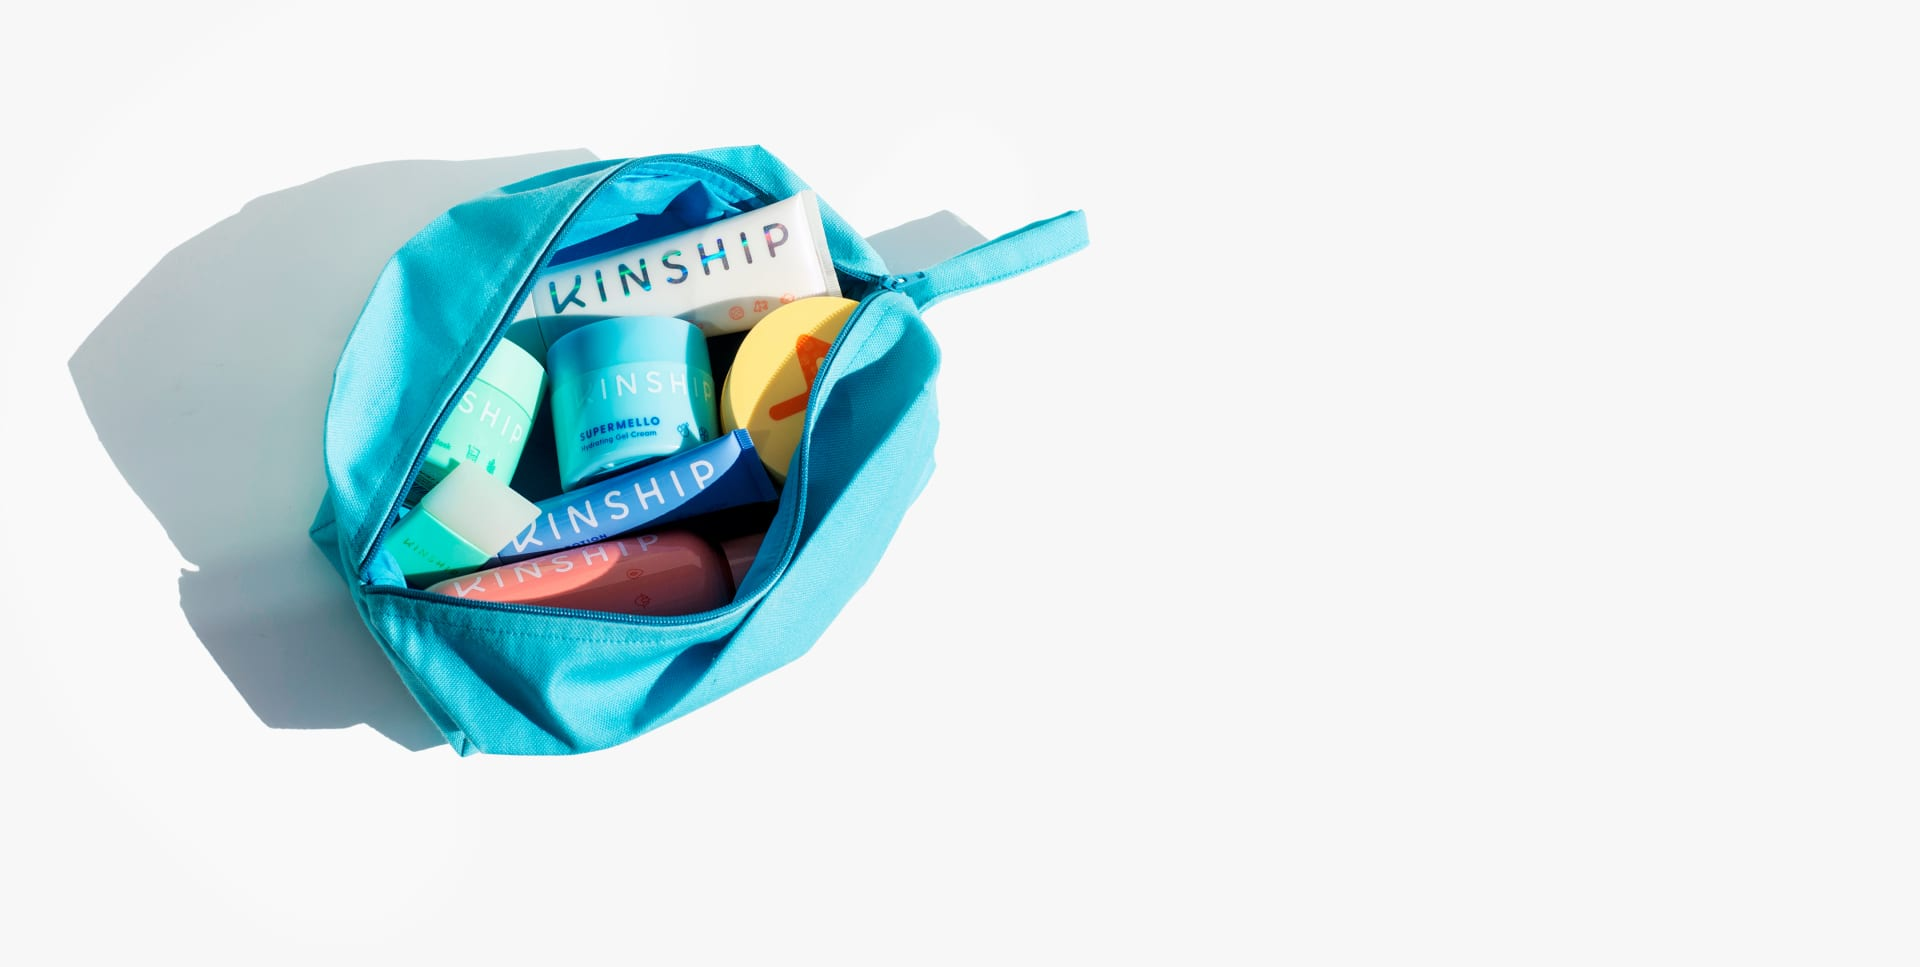 Unzipped On the Glow Dopp Kit with Kinship Happy Everything Set